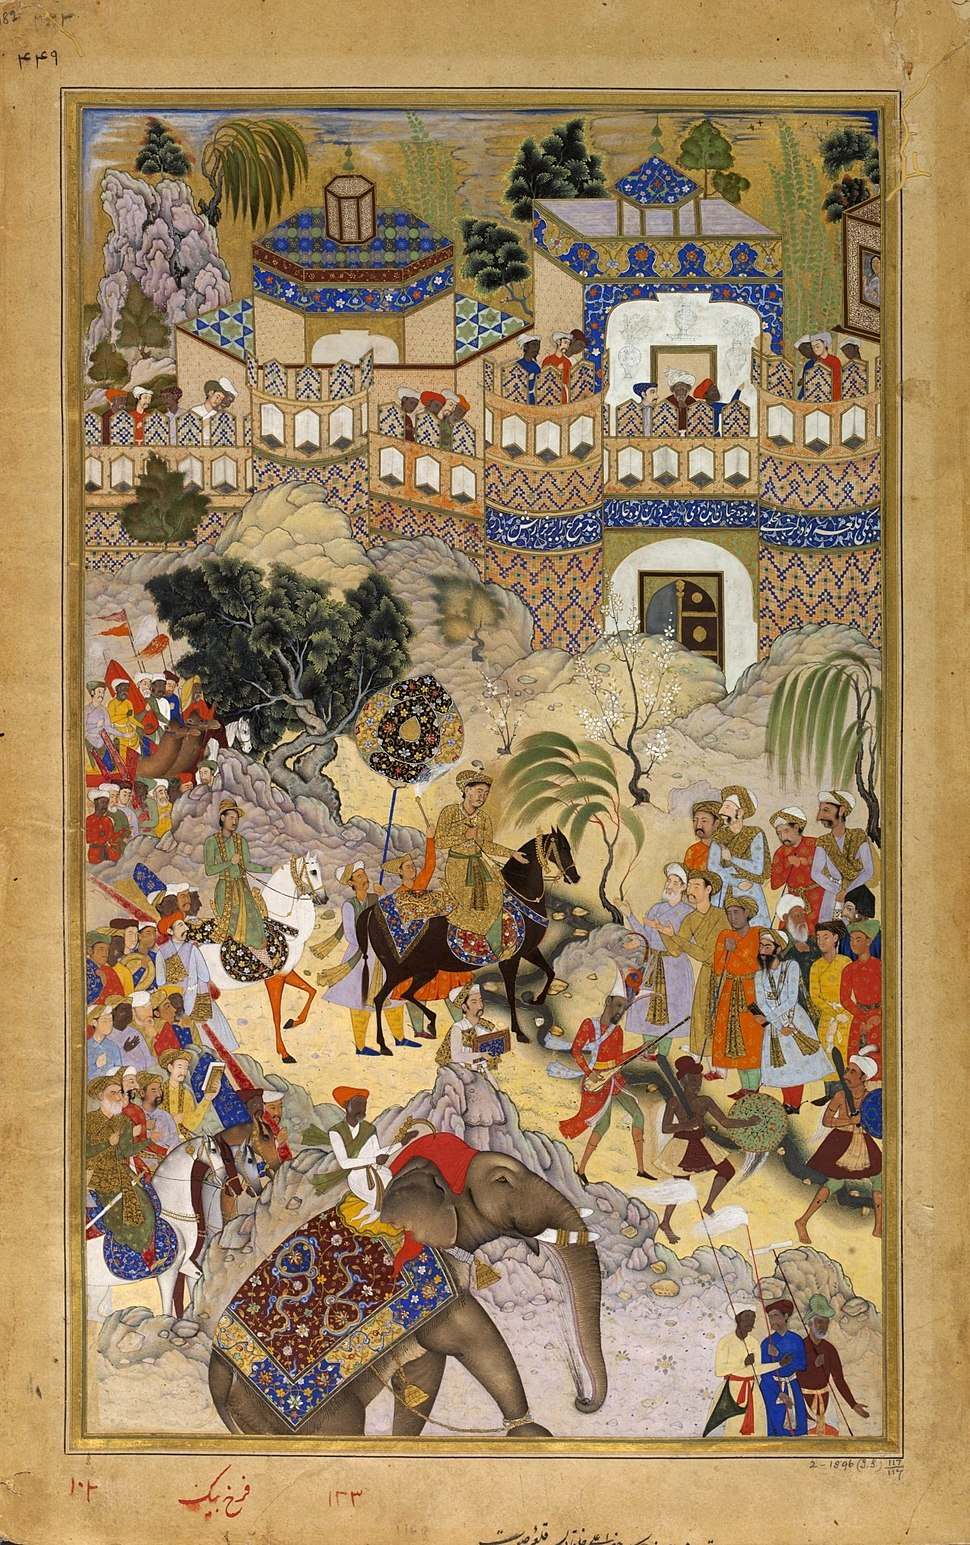 Farrukh Beg. Akbar%27s Triumphal Entry into Surat. Akbarnama, 1590-95, Victoria and Albert Museum, London